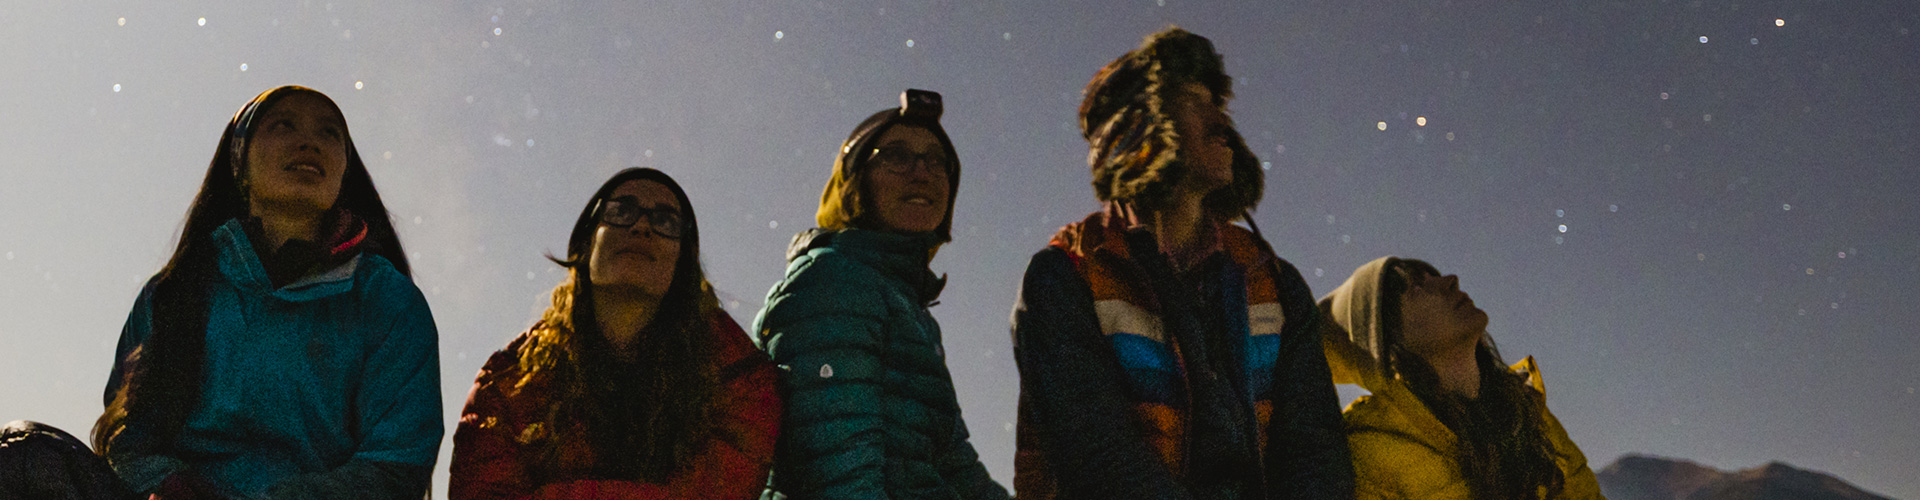 Campers with their new Kelty gear gazing at the stars